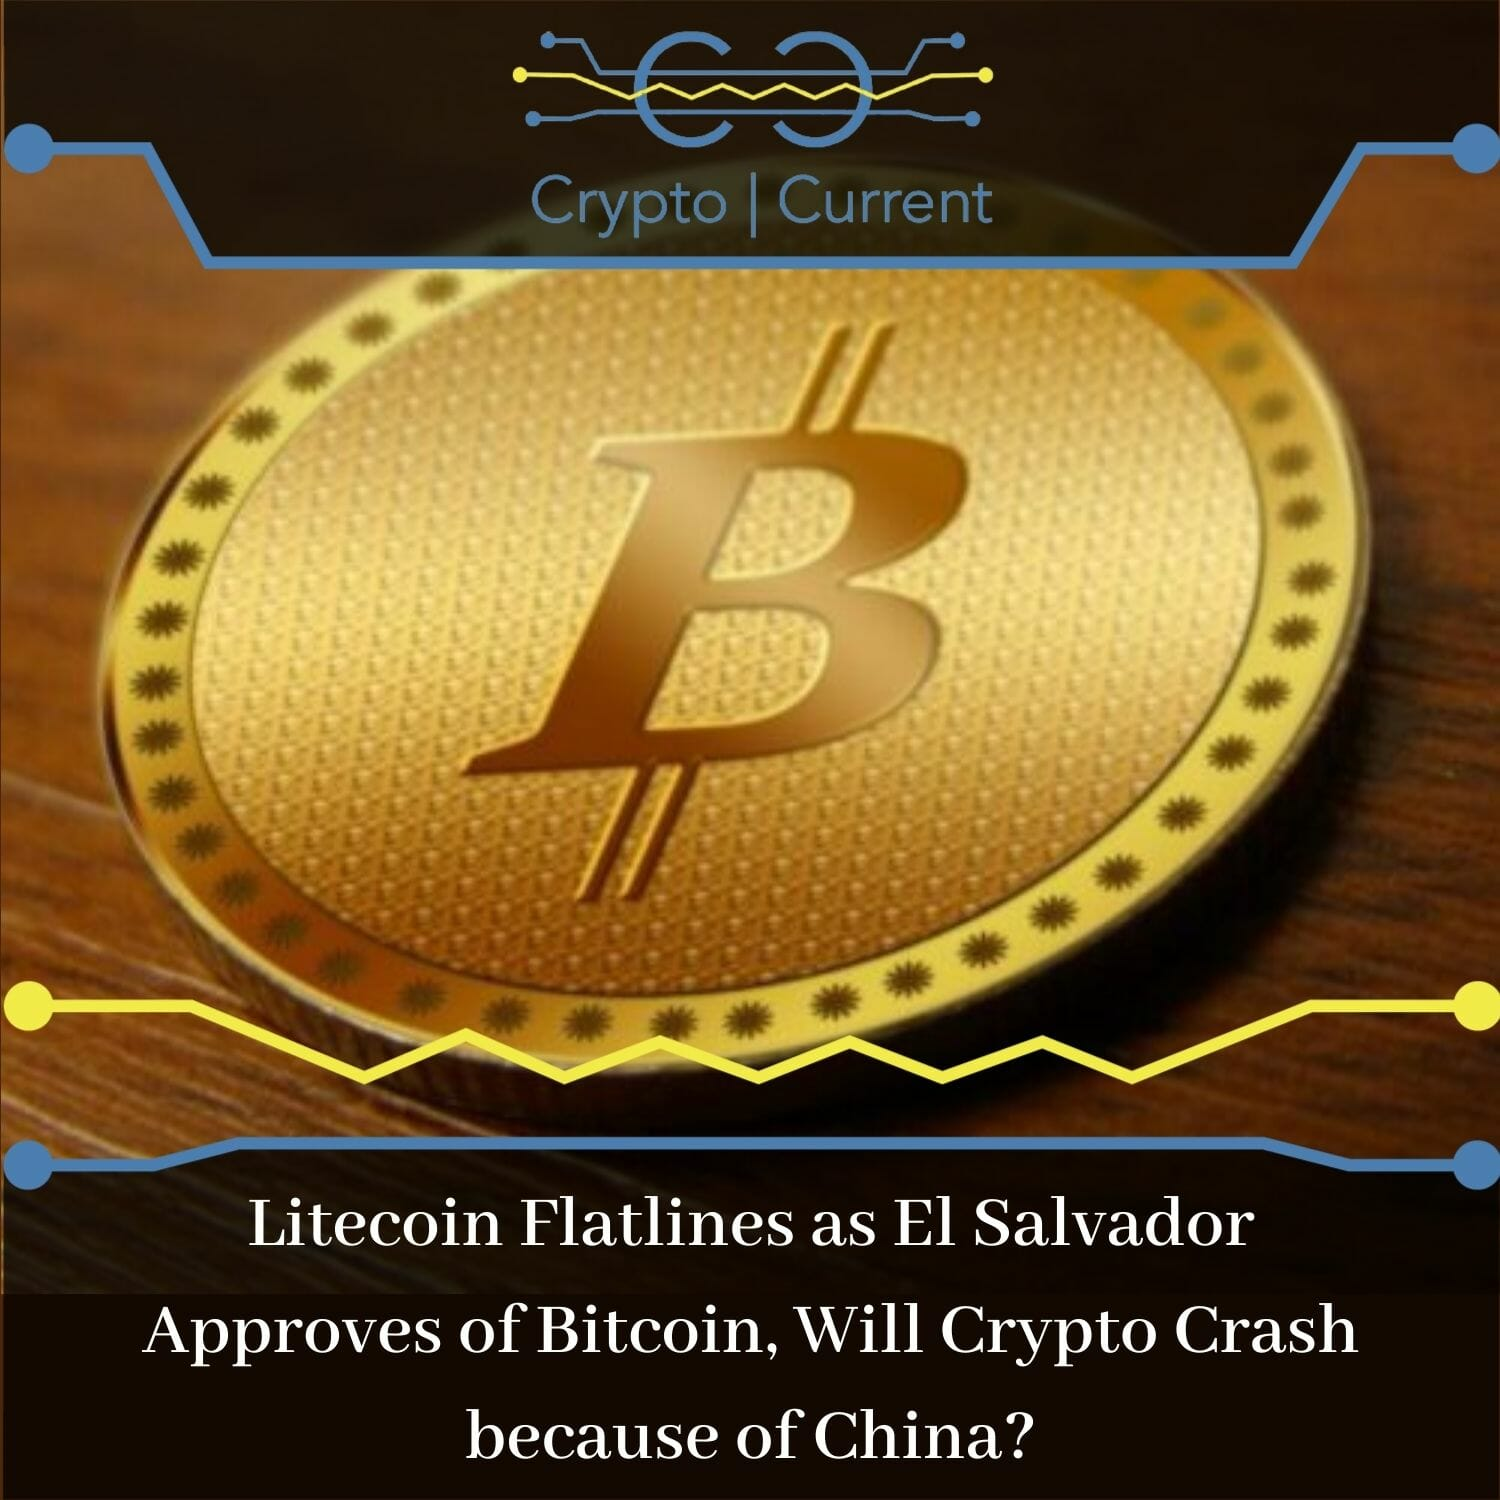 Litecoin Flatlines as El Salvador Approves of Bitcoin, Will Crypto Crash because of China?